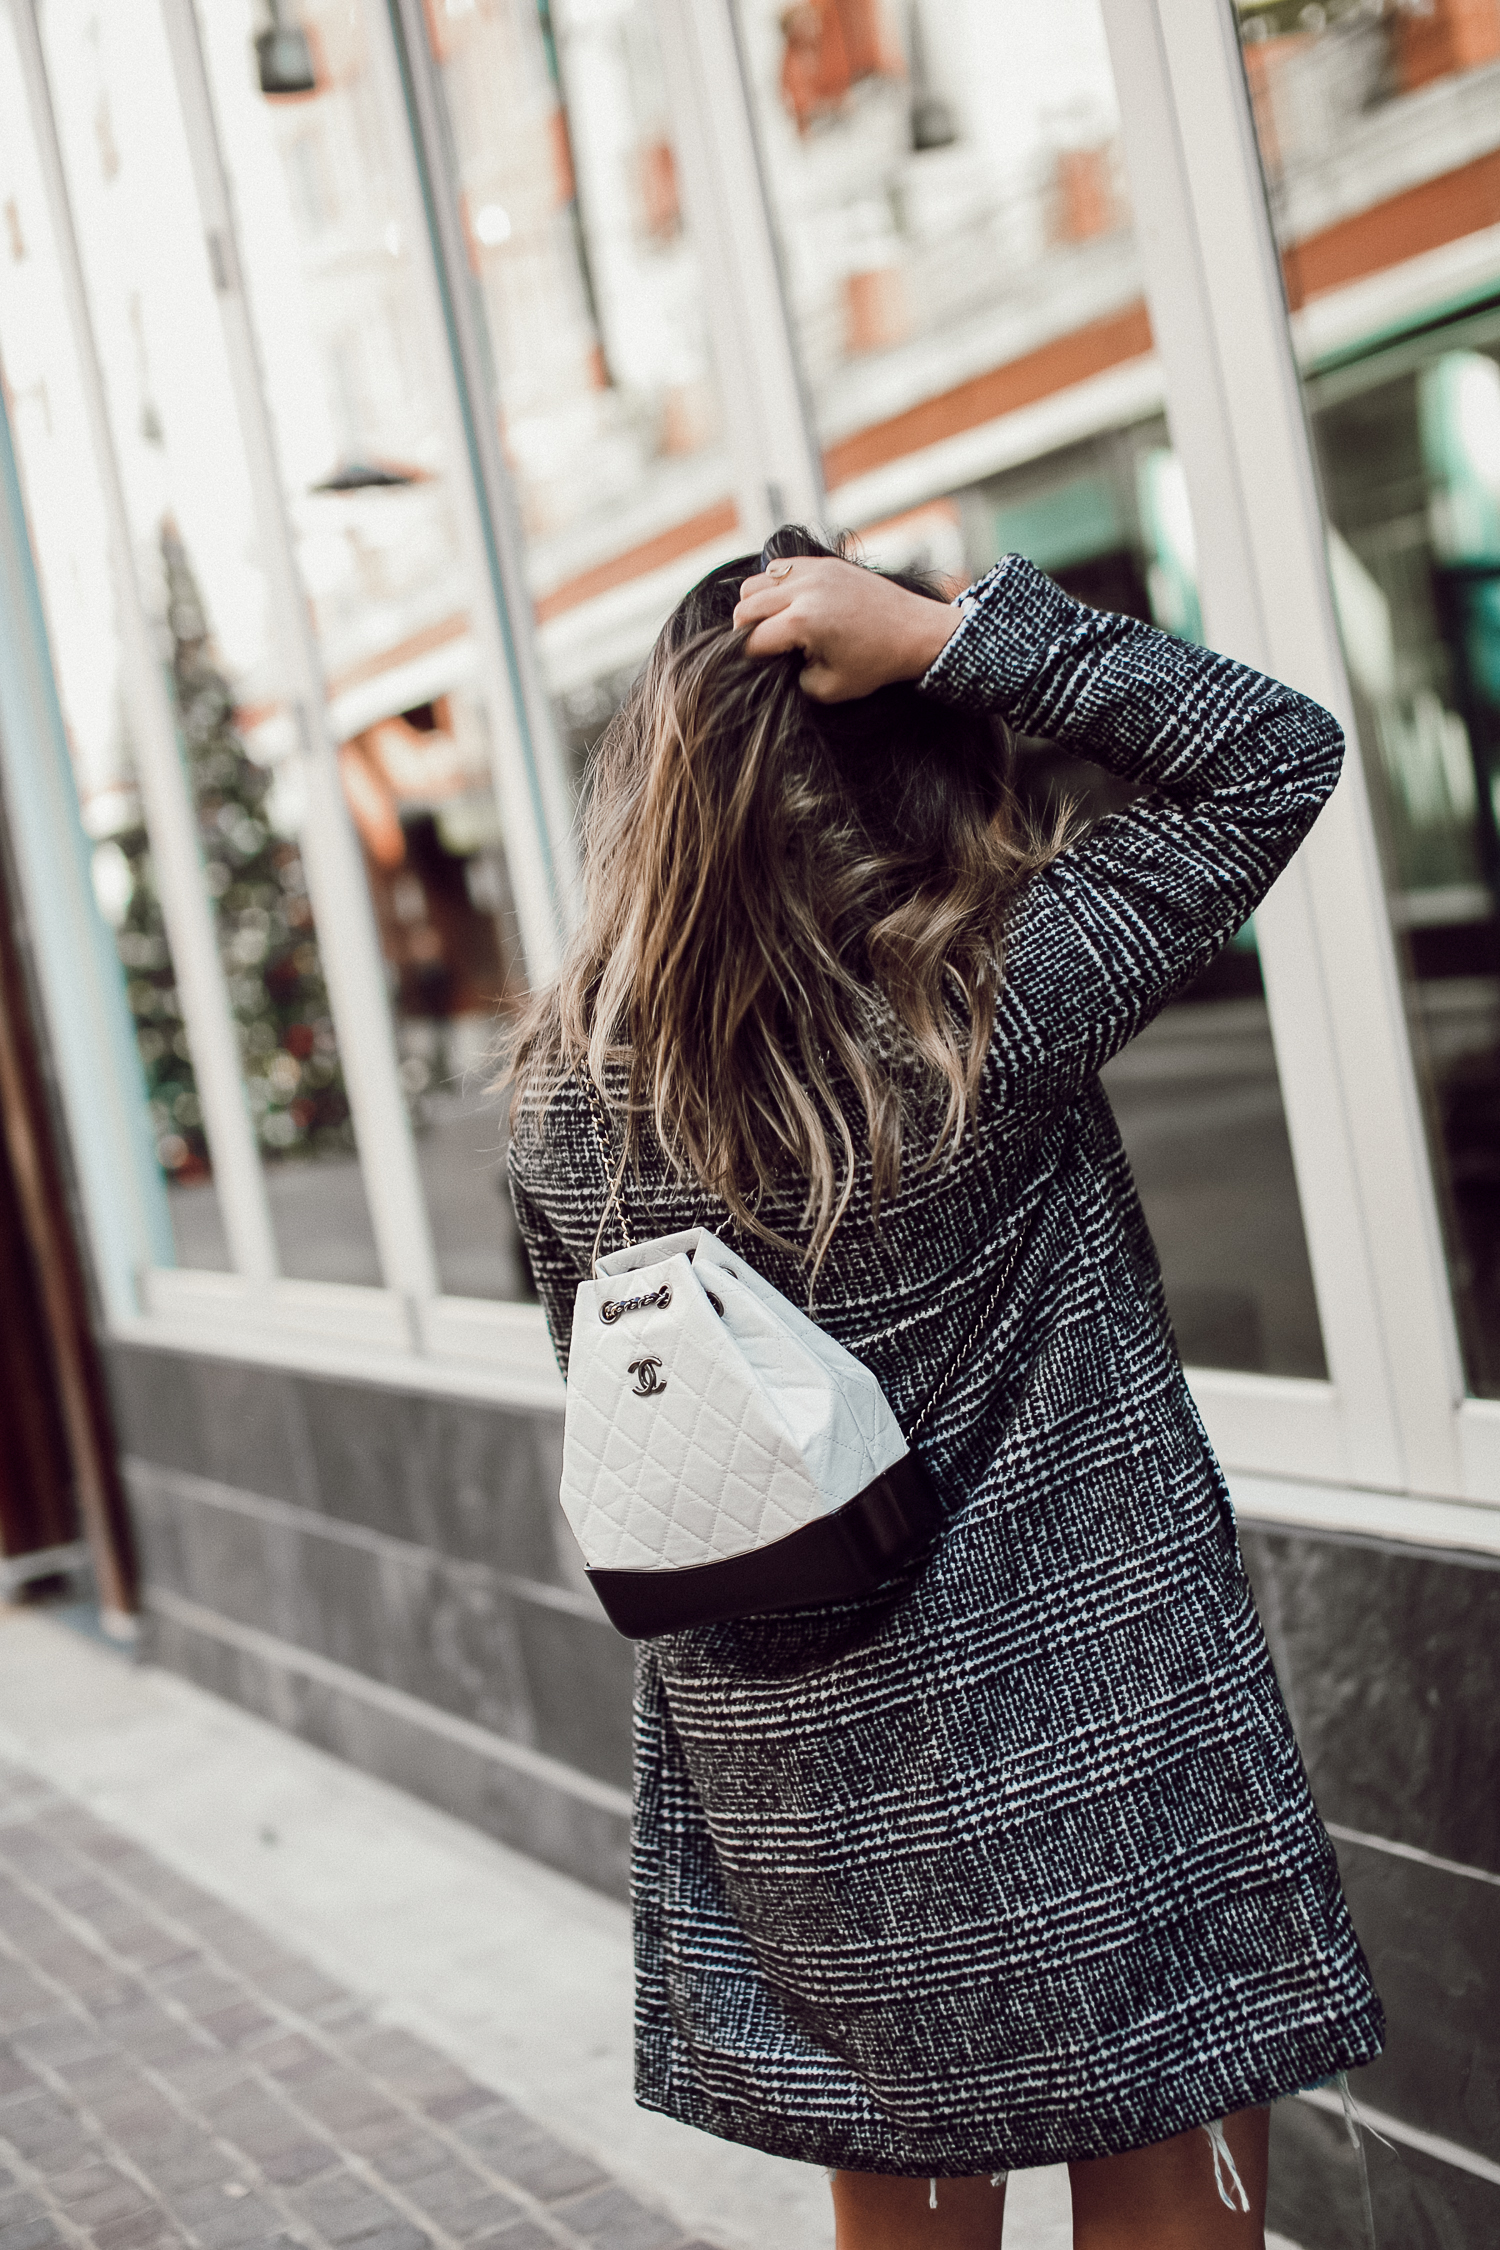 Style MBA Wears Chanel Backpack